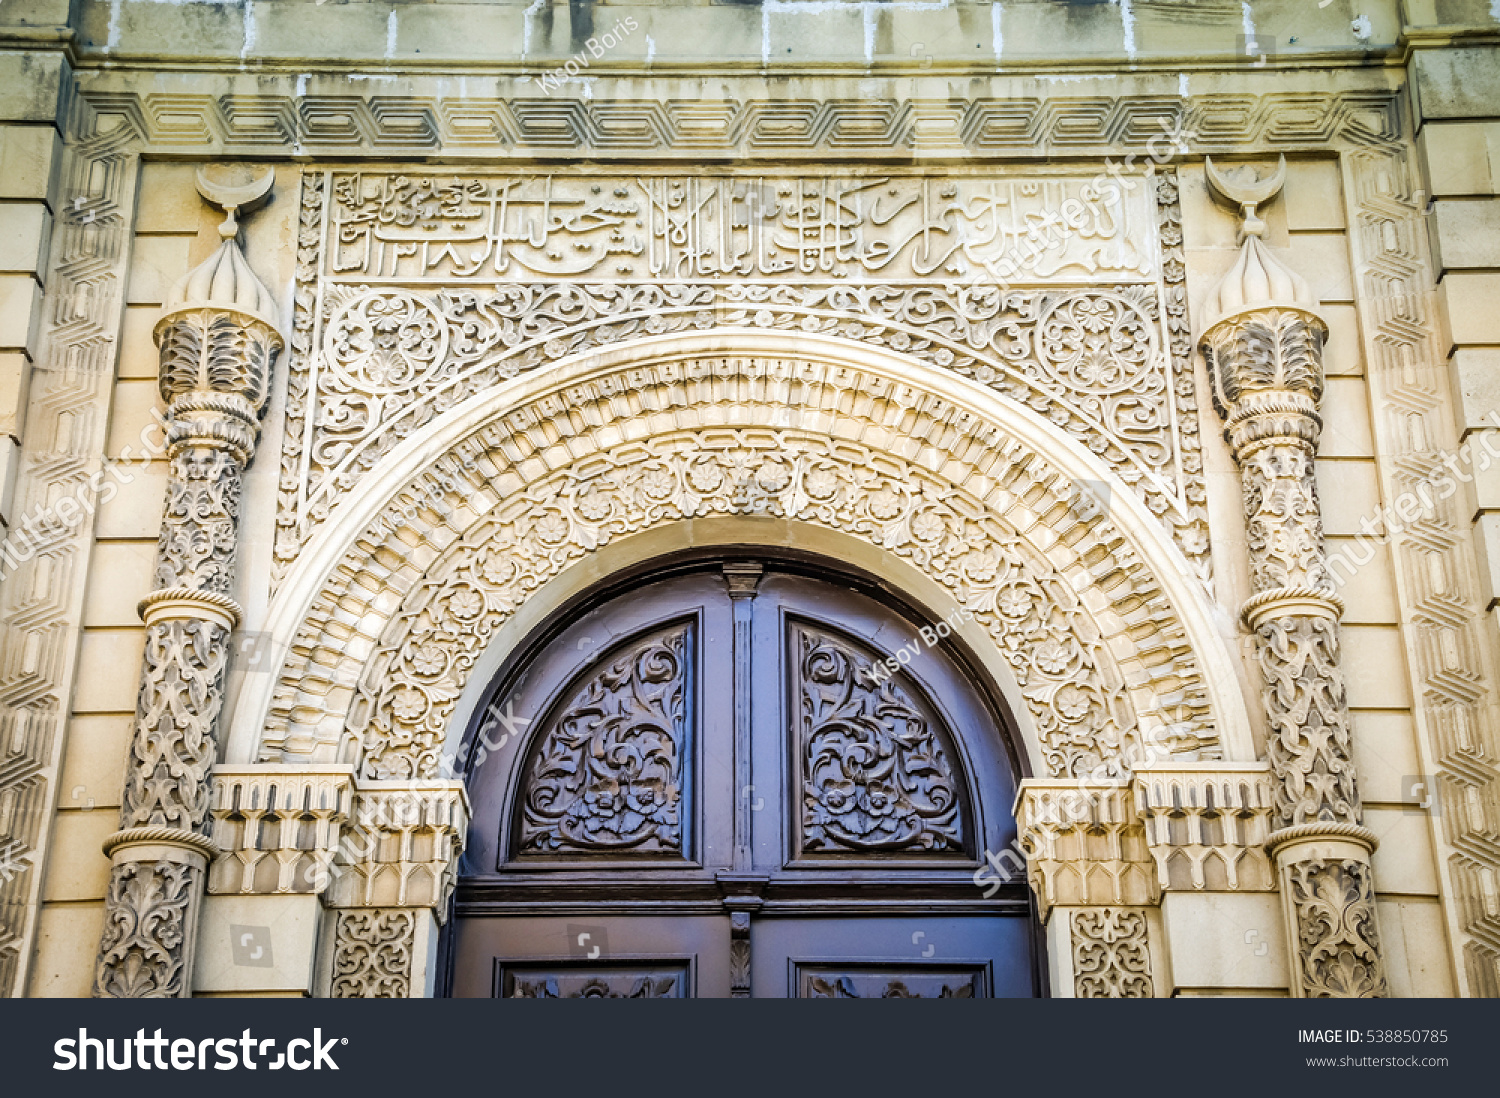 Old steel closed doors in the stone wall. Arab building. City building. Baku & Old Steel Closed Doors Stone Wall Stock Photo 538850785 - Shutterstock pezcame.com